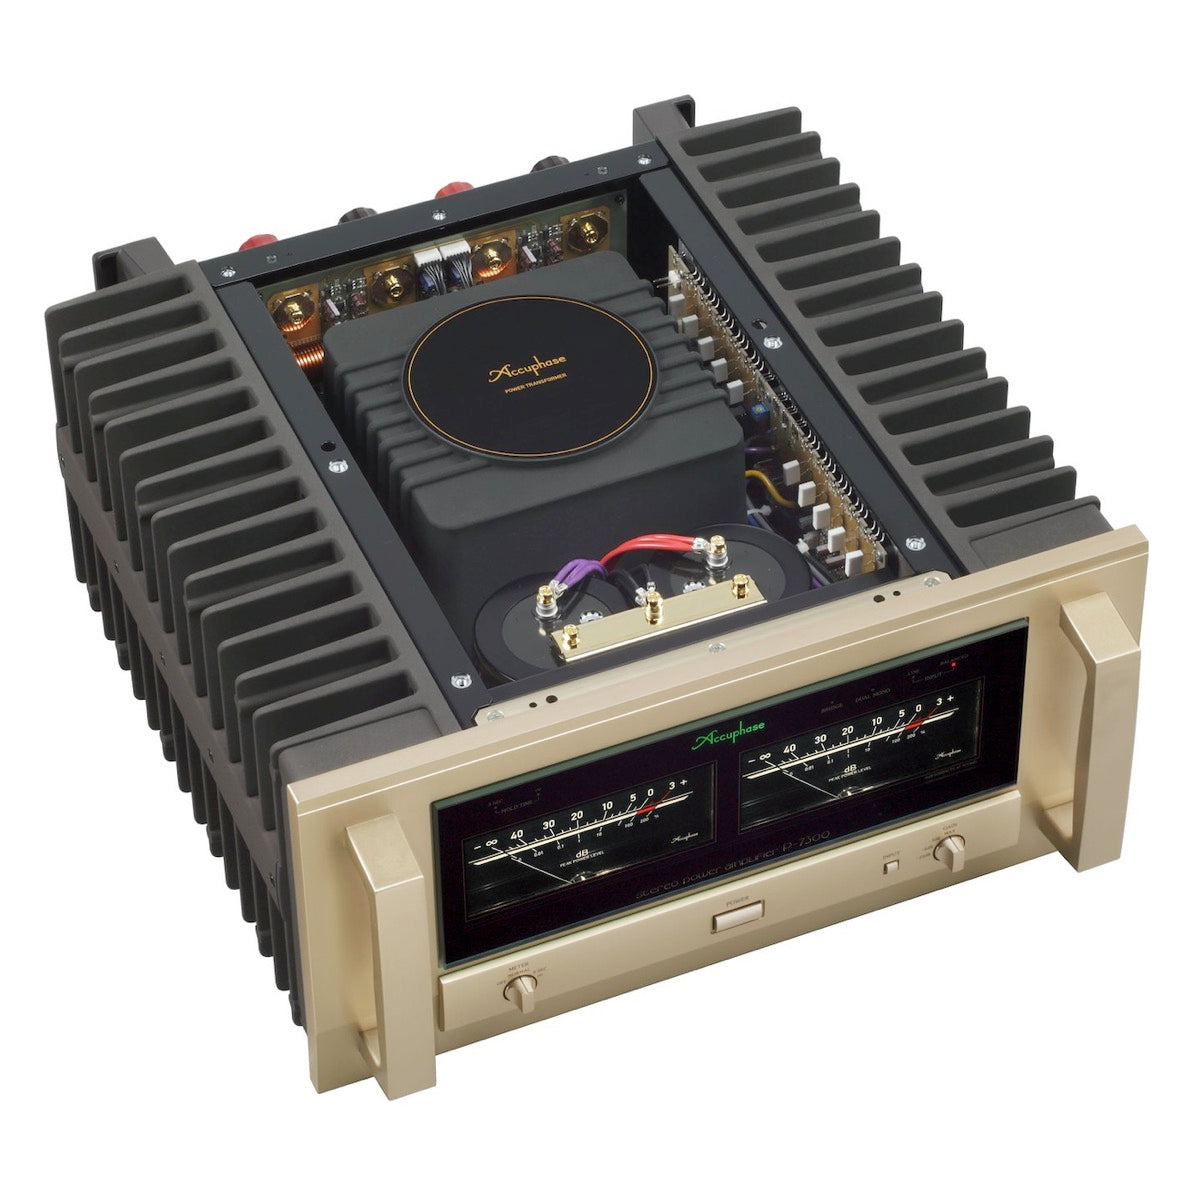 Accuphase P-7300 - Stereo Power Amplifier, Accuphase Laboratory, Inc., Power Amplifier - AVStore.in